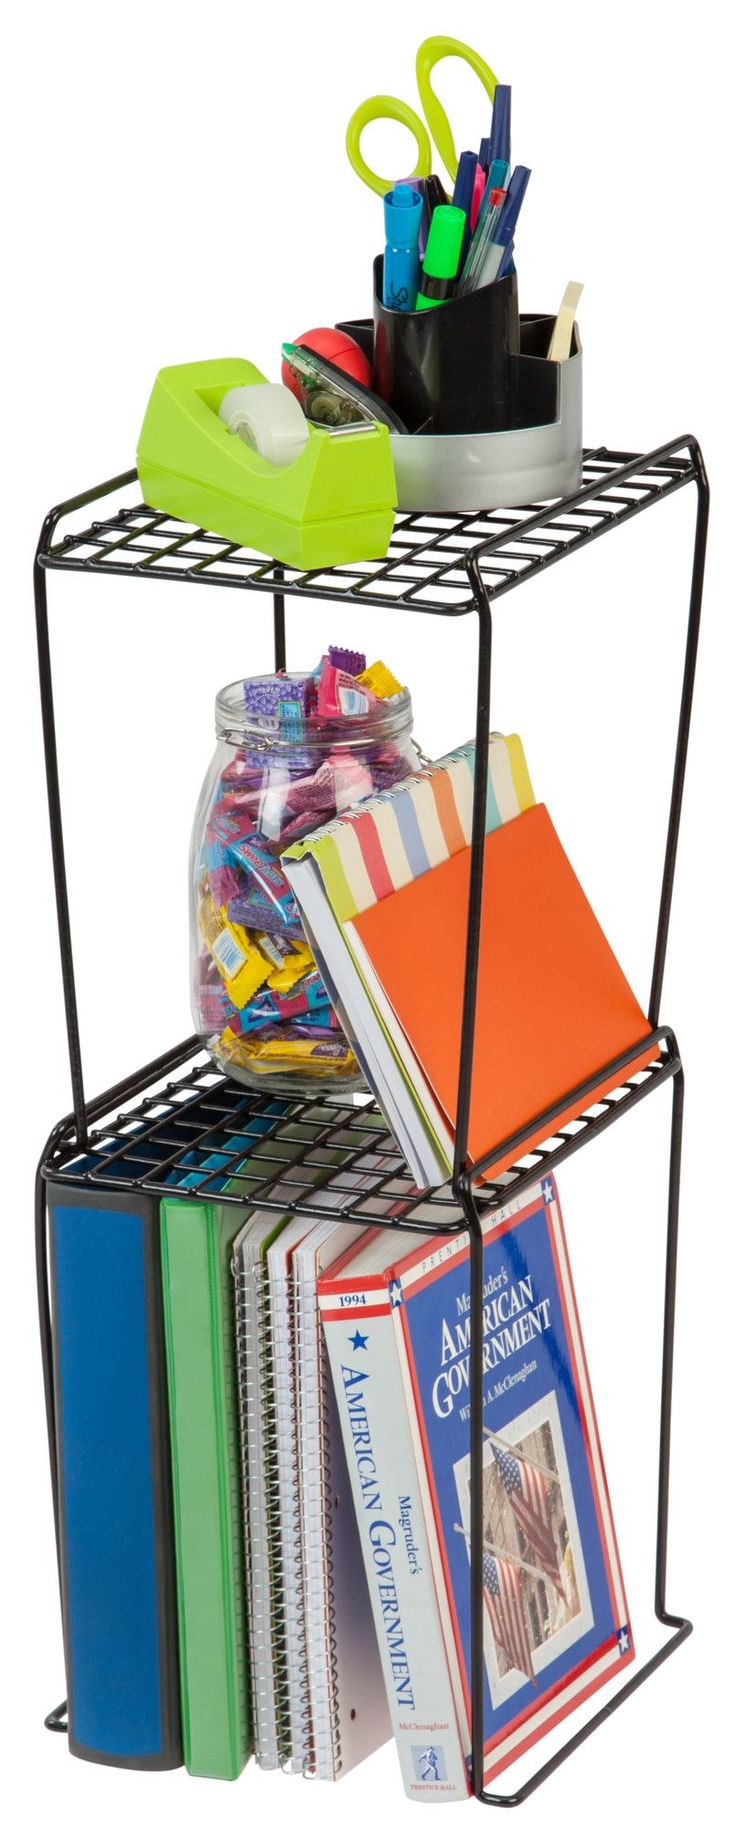 Features: -Fits in standard locker size. -Stackable for multiple shelving storage. -Great for managing locker space at school, work or the gym. -Extra tall to store binders and books. -Orientatio